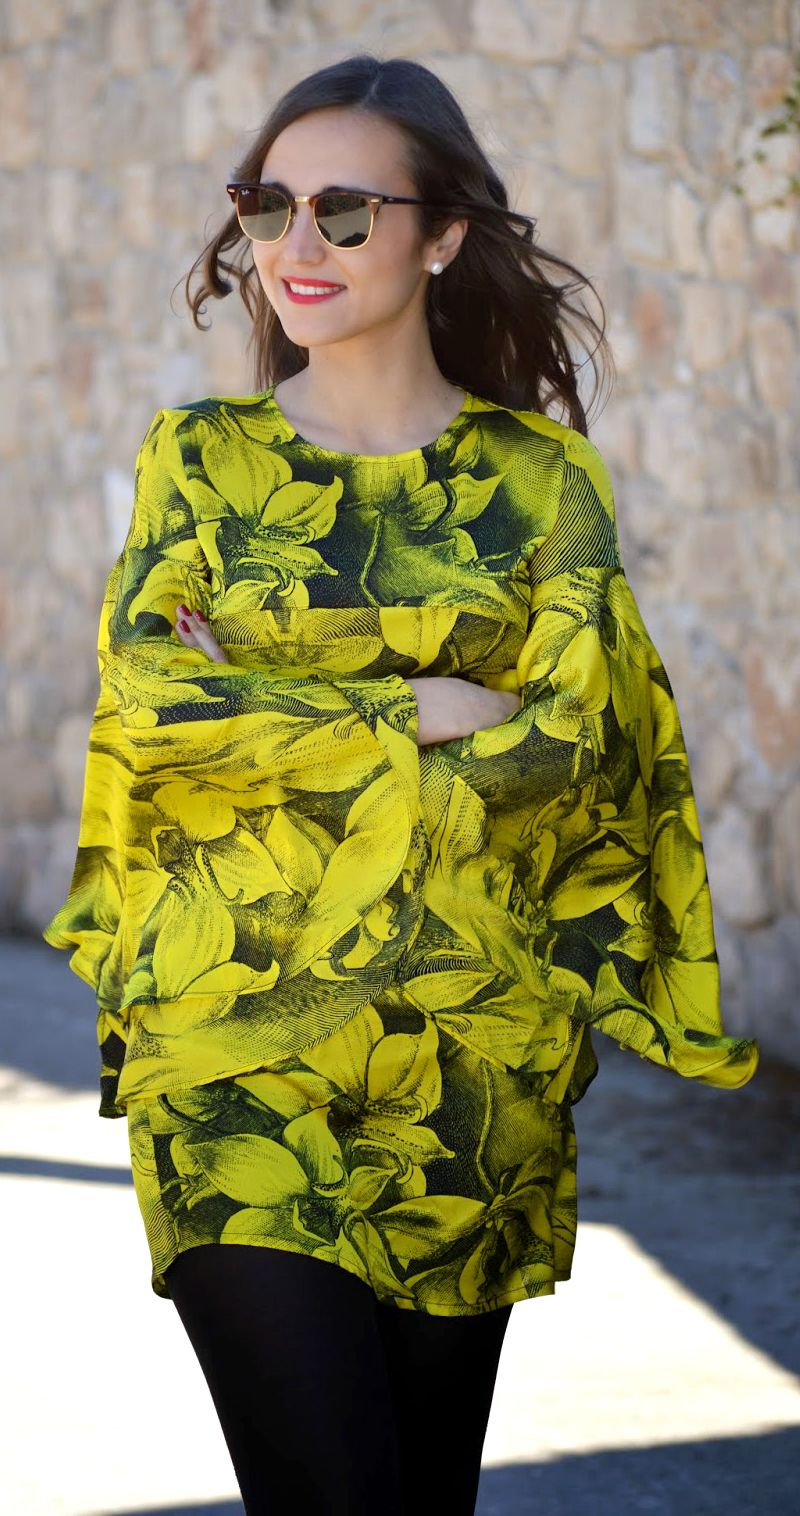 Bright as sunshine, smile like sunflower! show me your recklessly love and flowy grace elements in this light-hearted fancy dress!